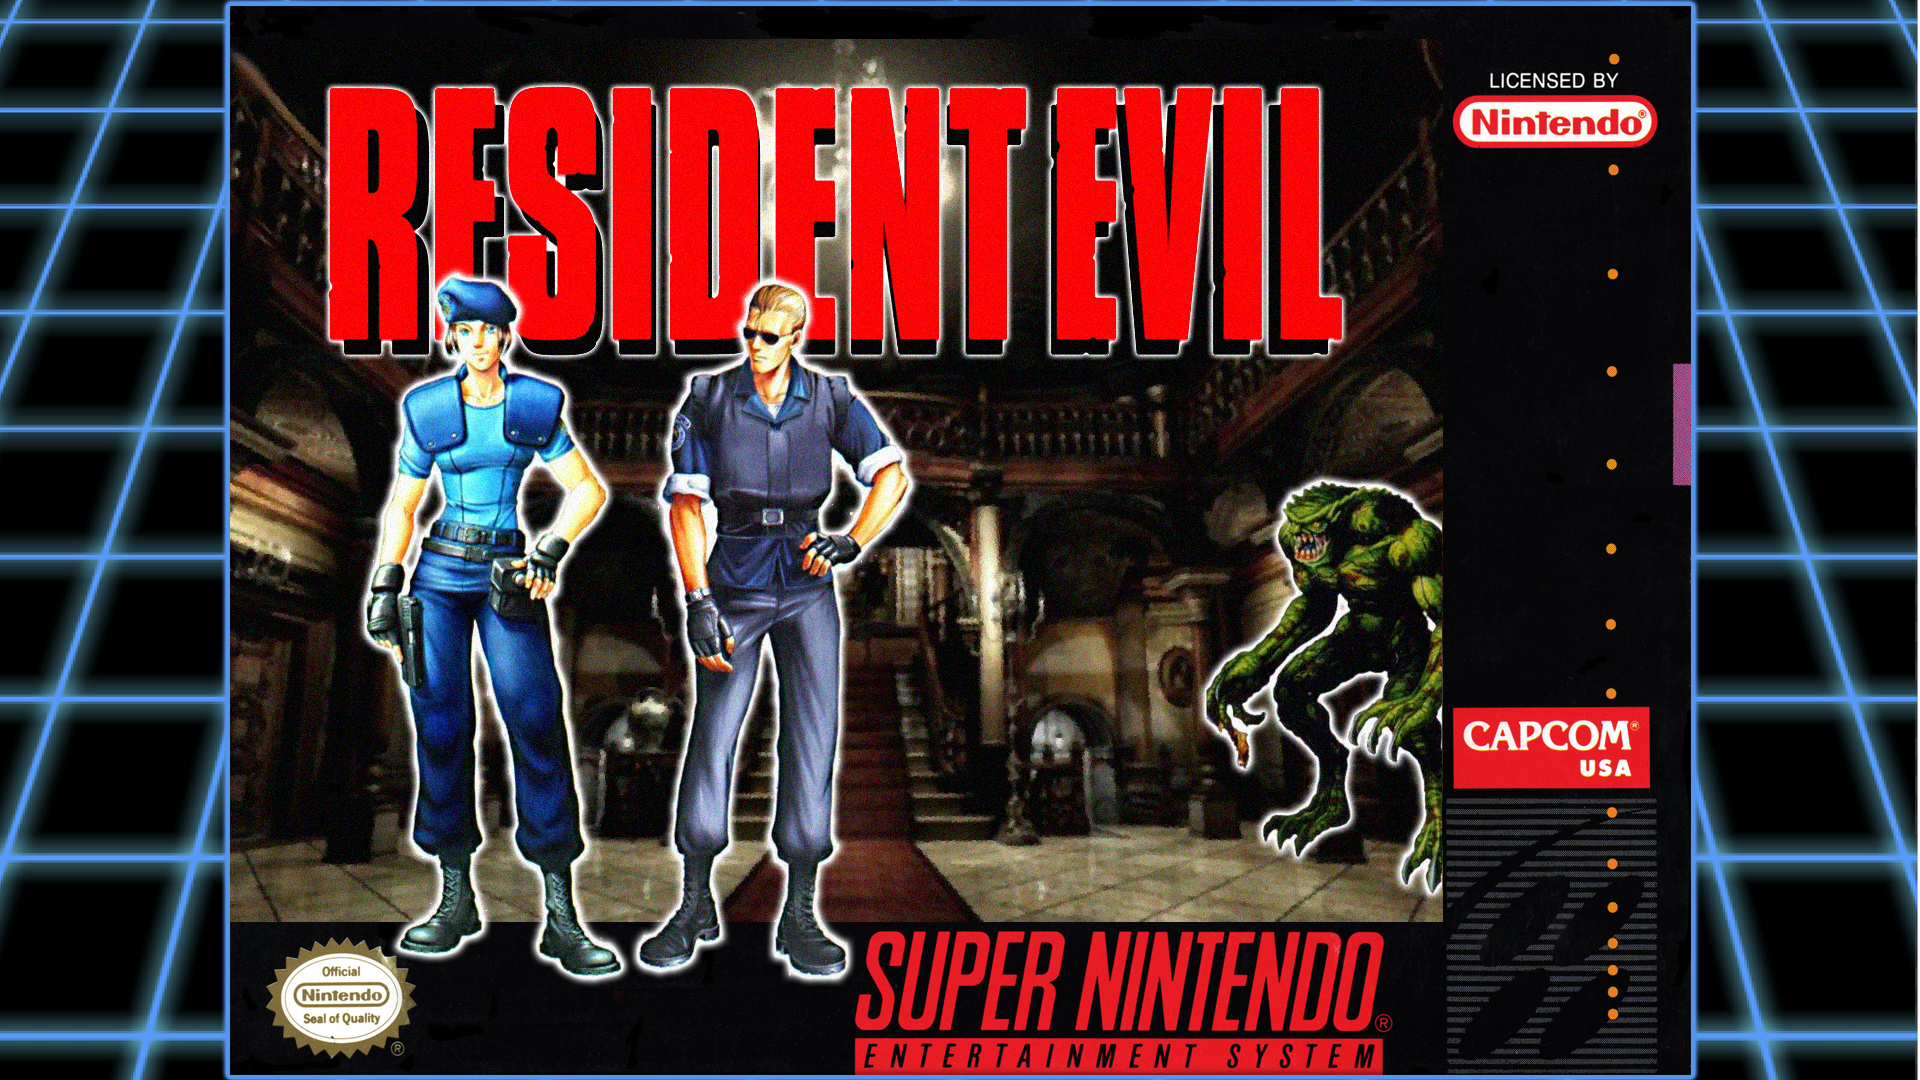 Resident Evil was originally an SNES title | Nintendo Wire